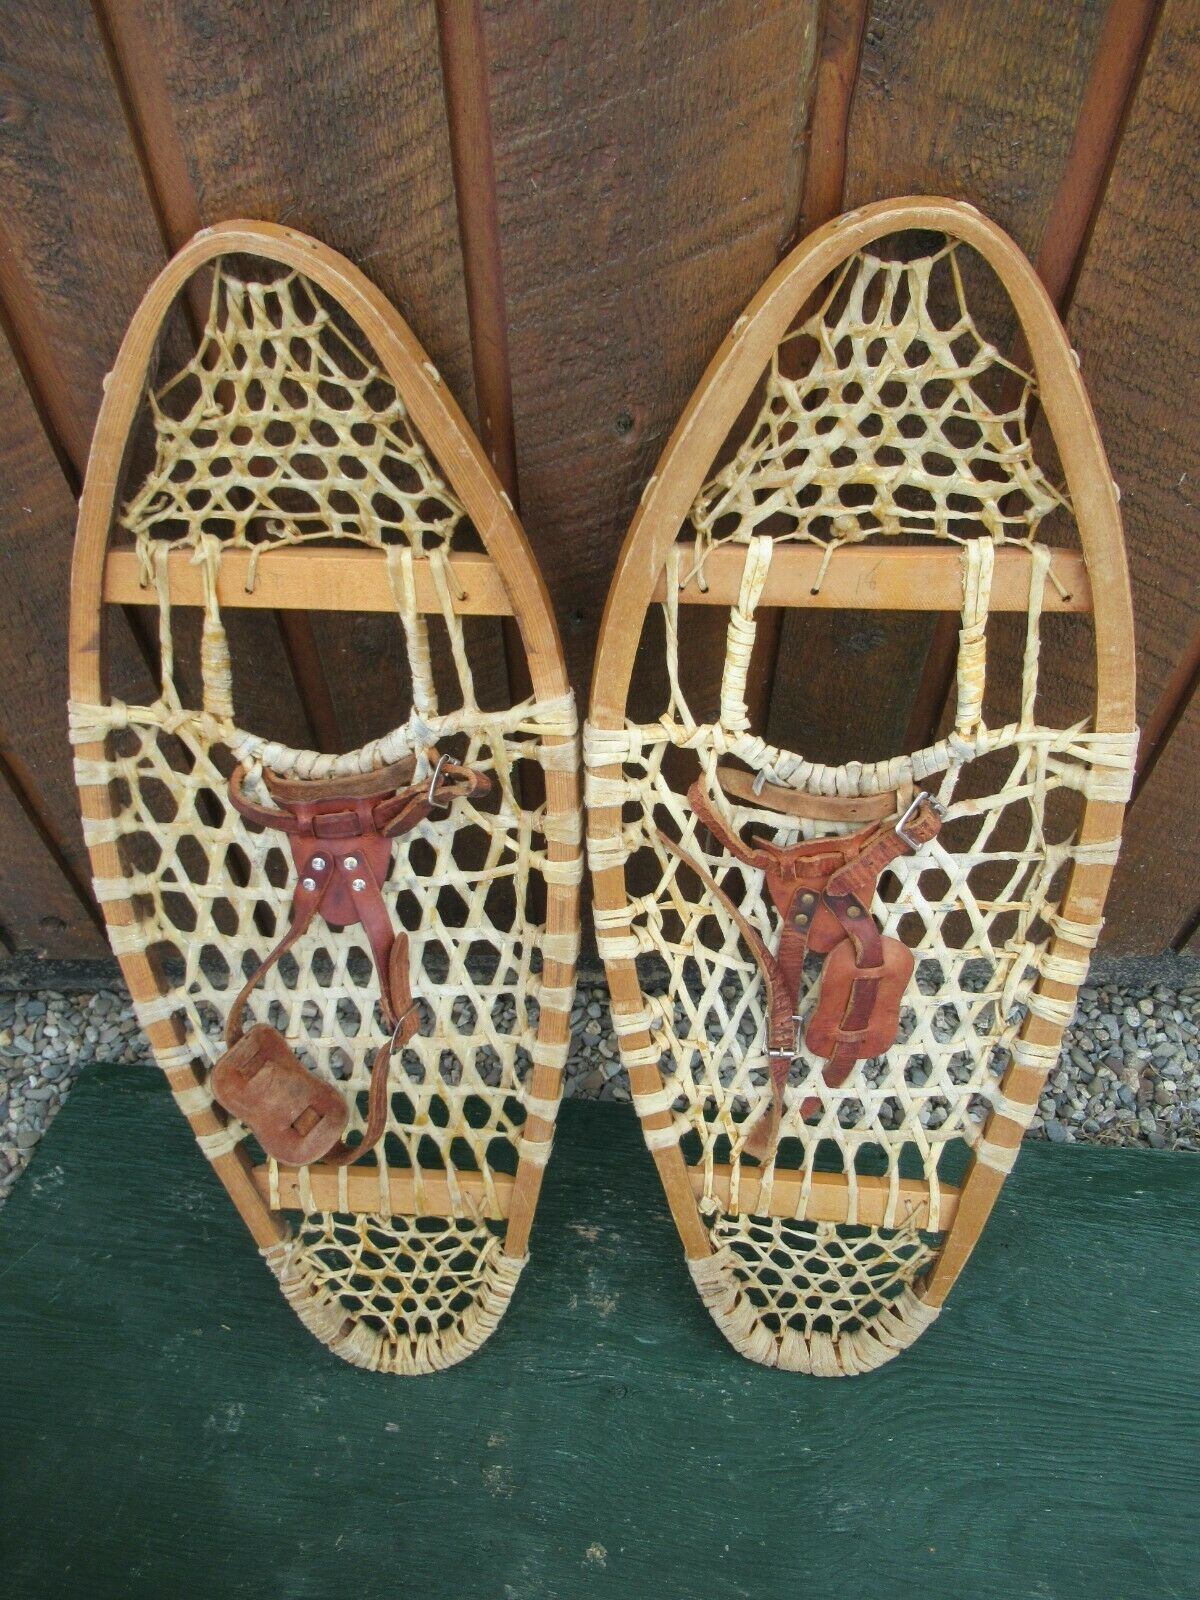 GREAT Snowshoes 30  Long x 12  Wide with  Leather Binding Ready to Use  cheapest